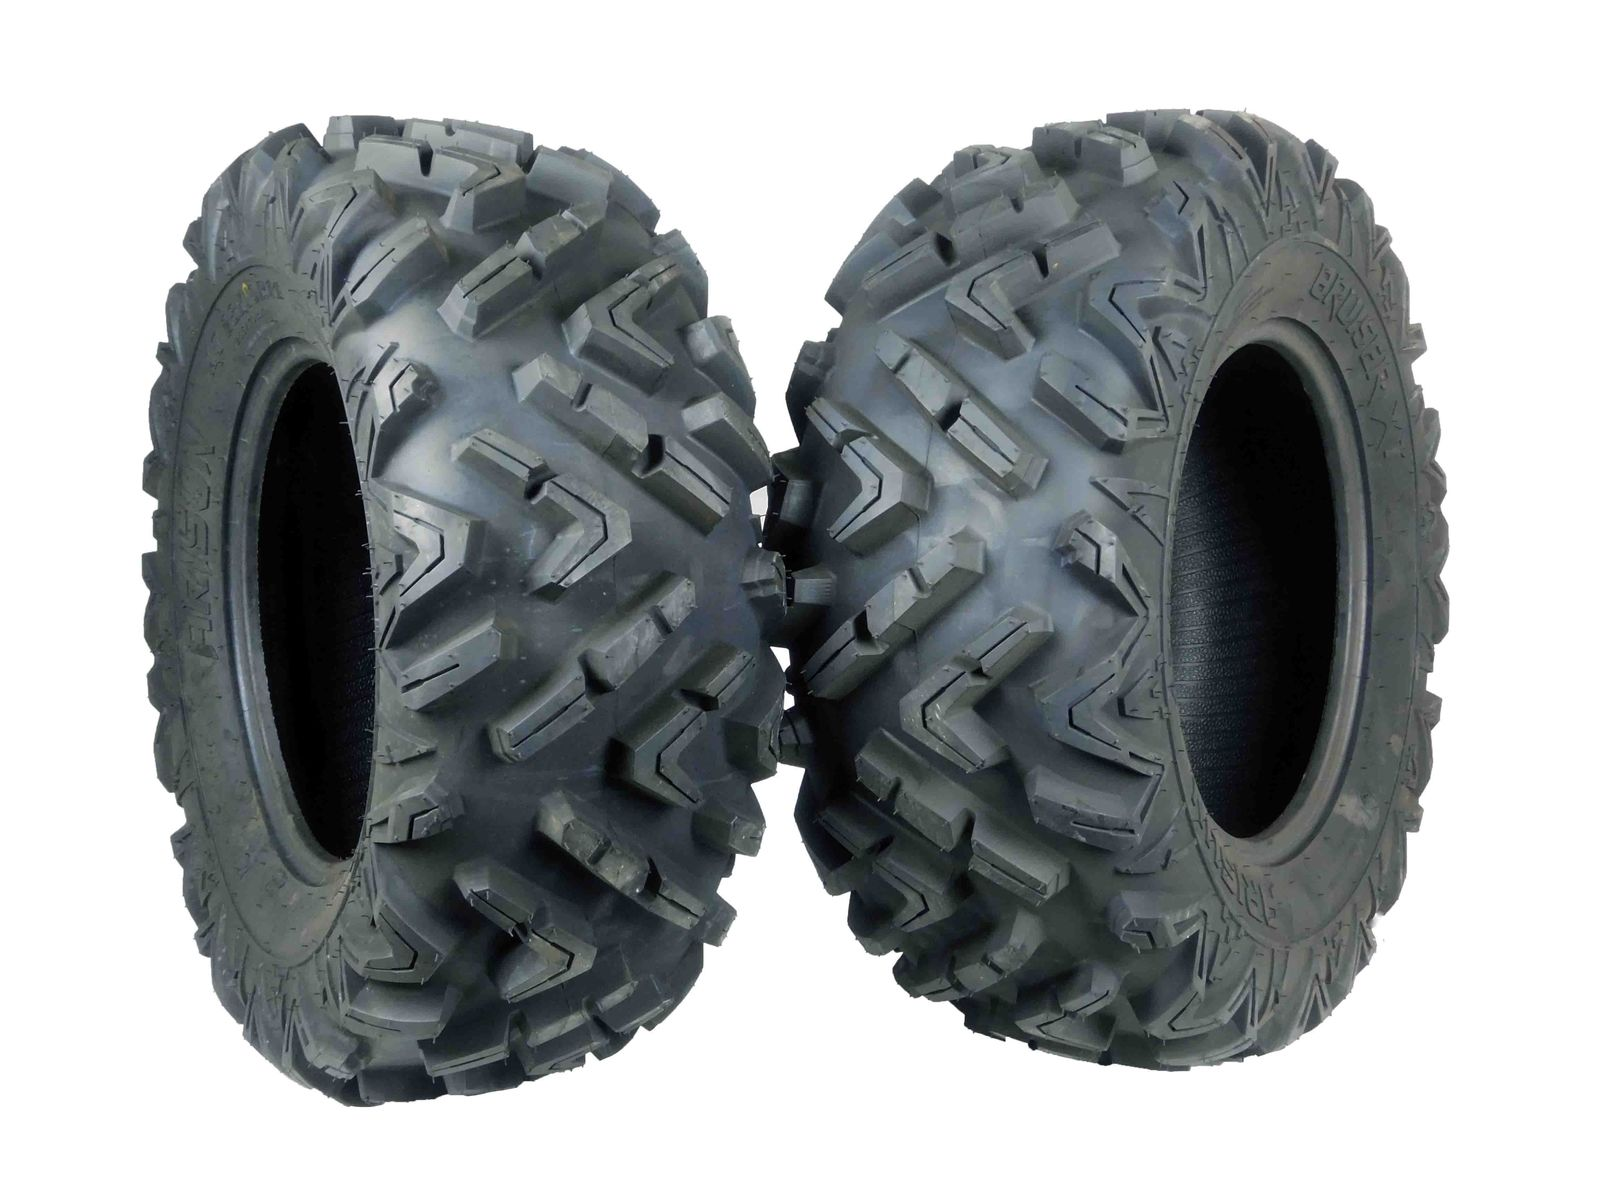 Arisun-28x10-14-Tires-Bruiser-XT-RADIAL-8ply-255-70R14-N4D-Protection-image-1